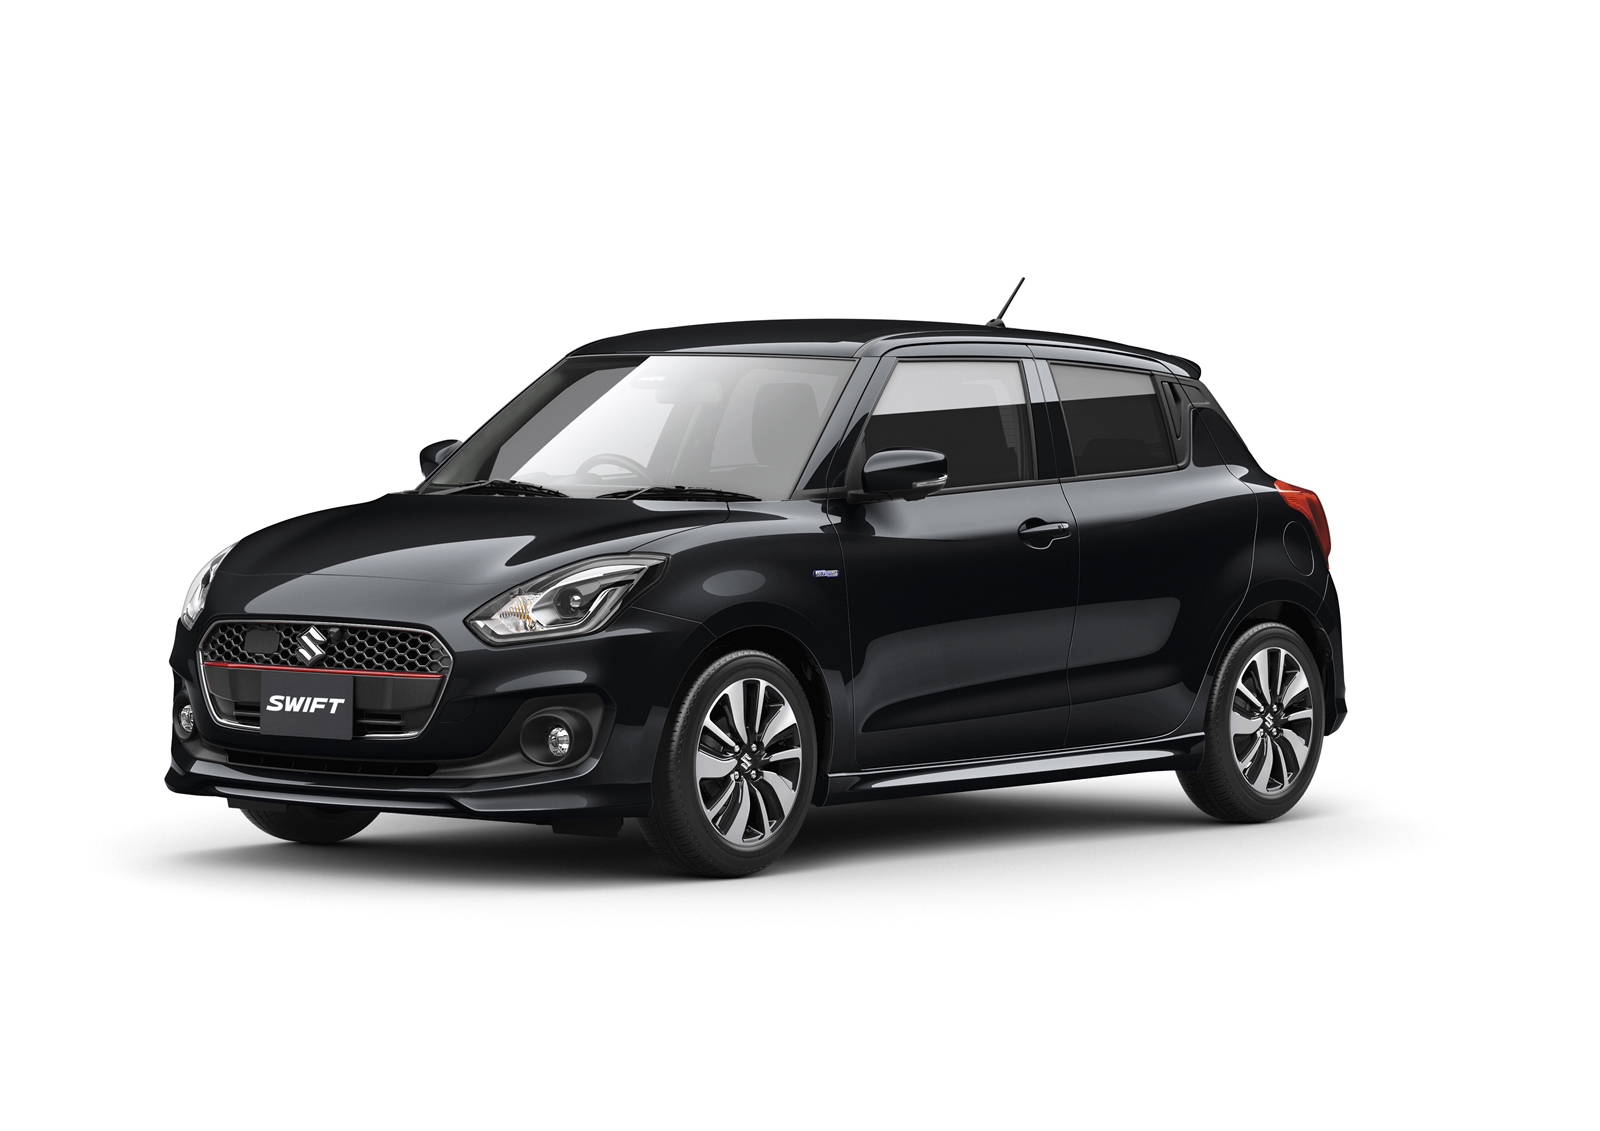 Suzuki Swift 2017 (13)